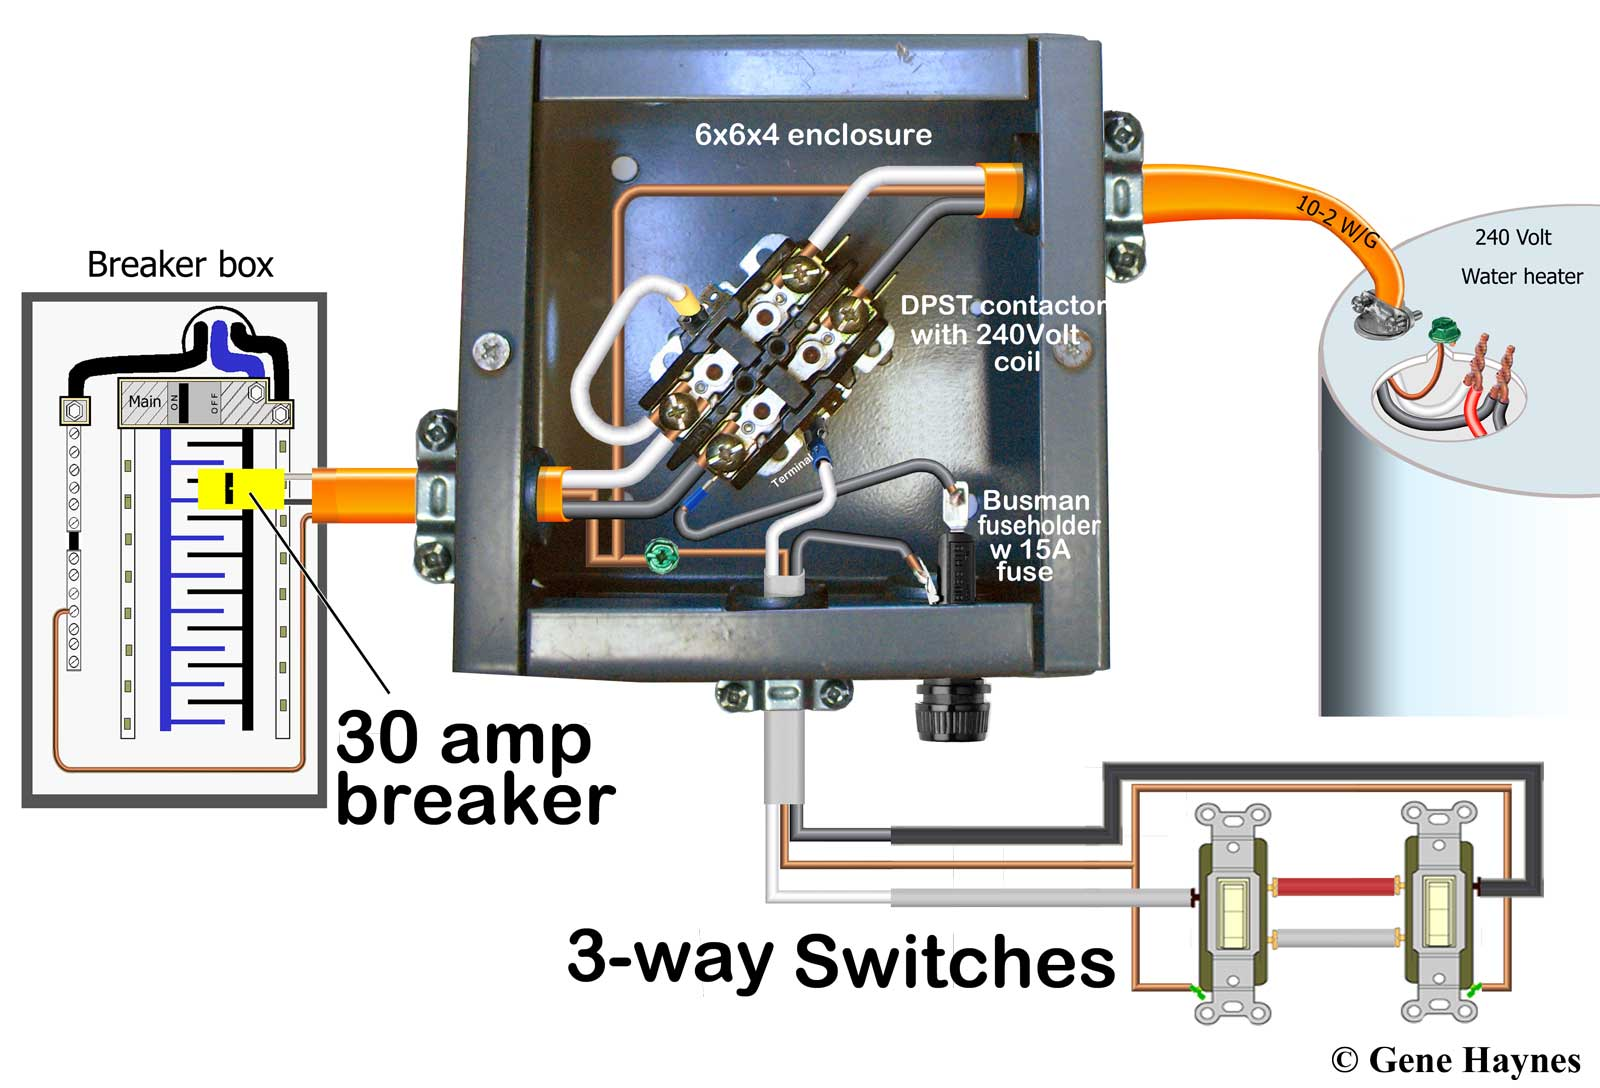 How To Wire Water Heater With Two Switches - 3 way switch electronics